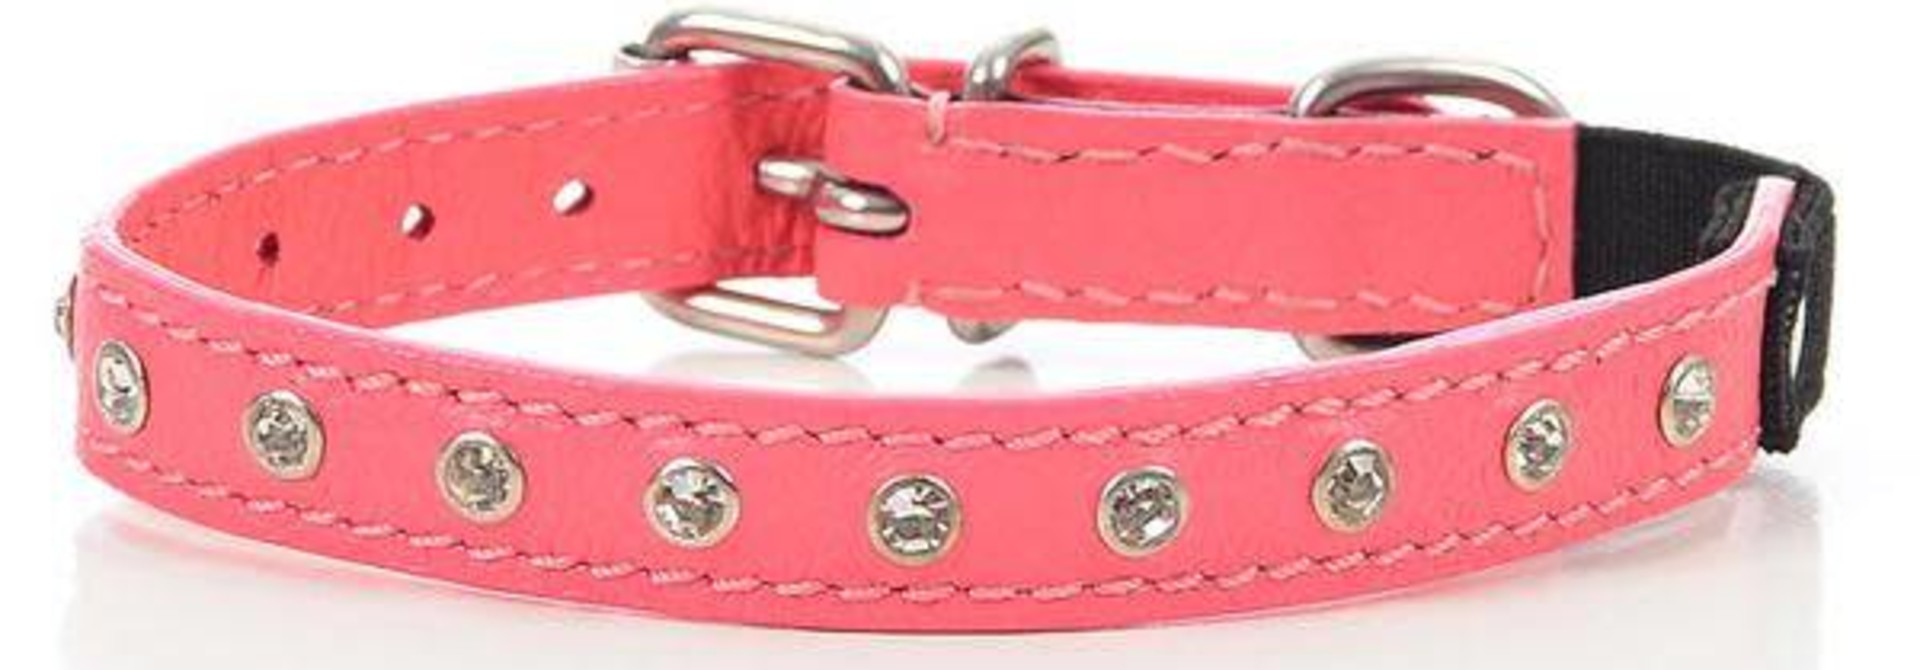 "Athens Leather Collar Pink Rhinestones 16"" x 3/4"""